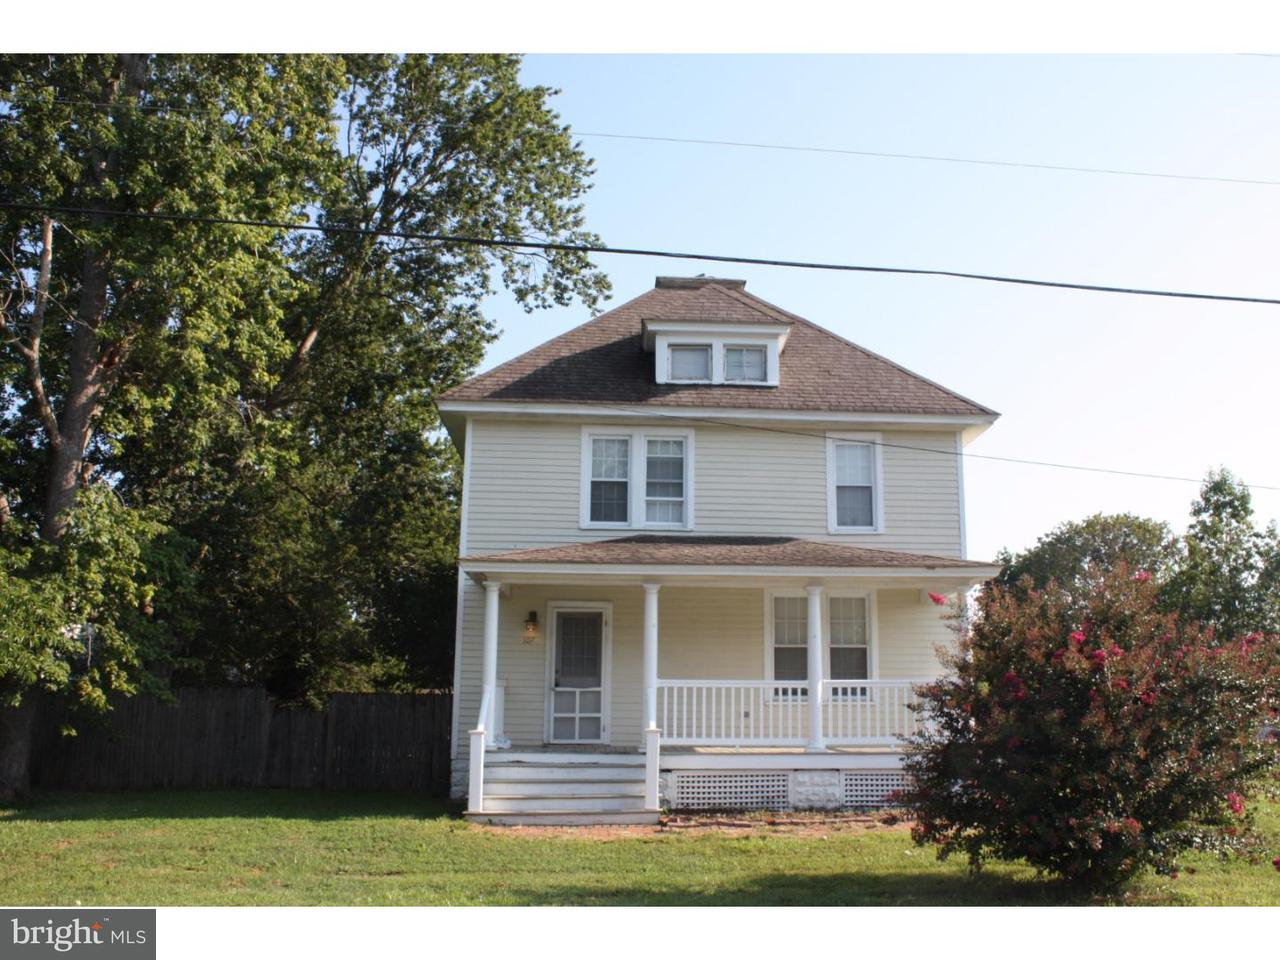 Single Family Home for Rent at 107 W HIGH Street Felton, Delaware 19943 United States